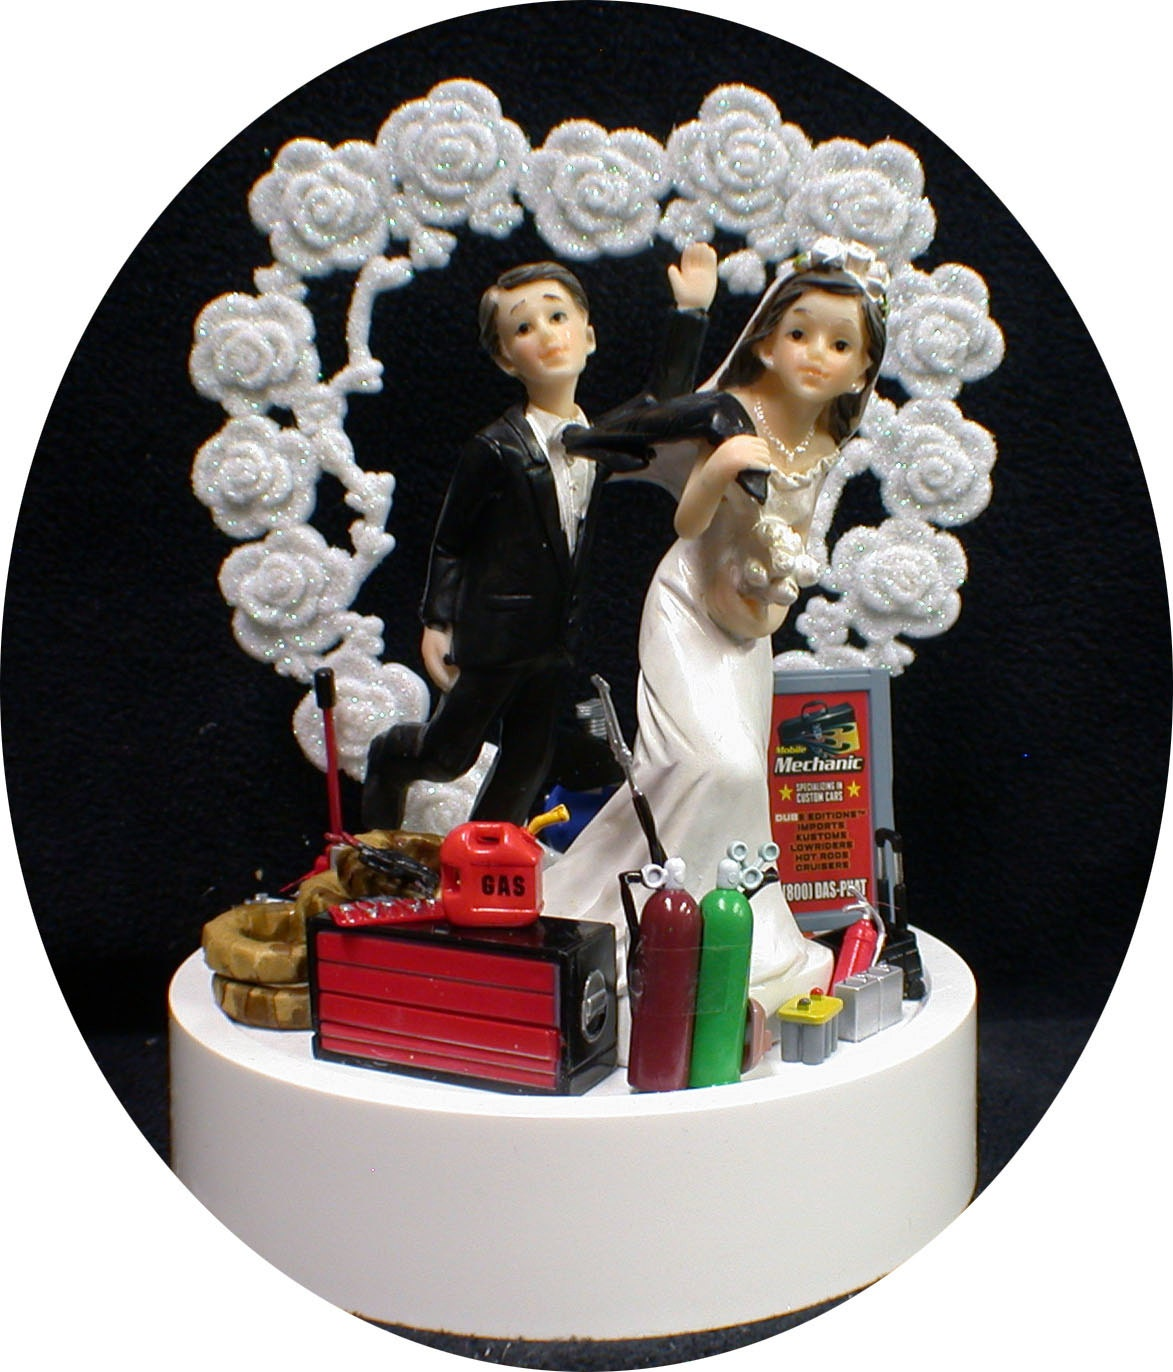 Heart Car AUTO MECHANIC Wedding Cake Topper Bride Groom top